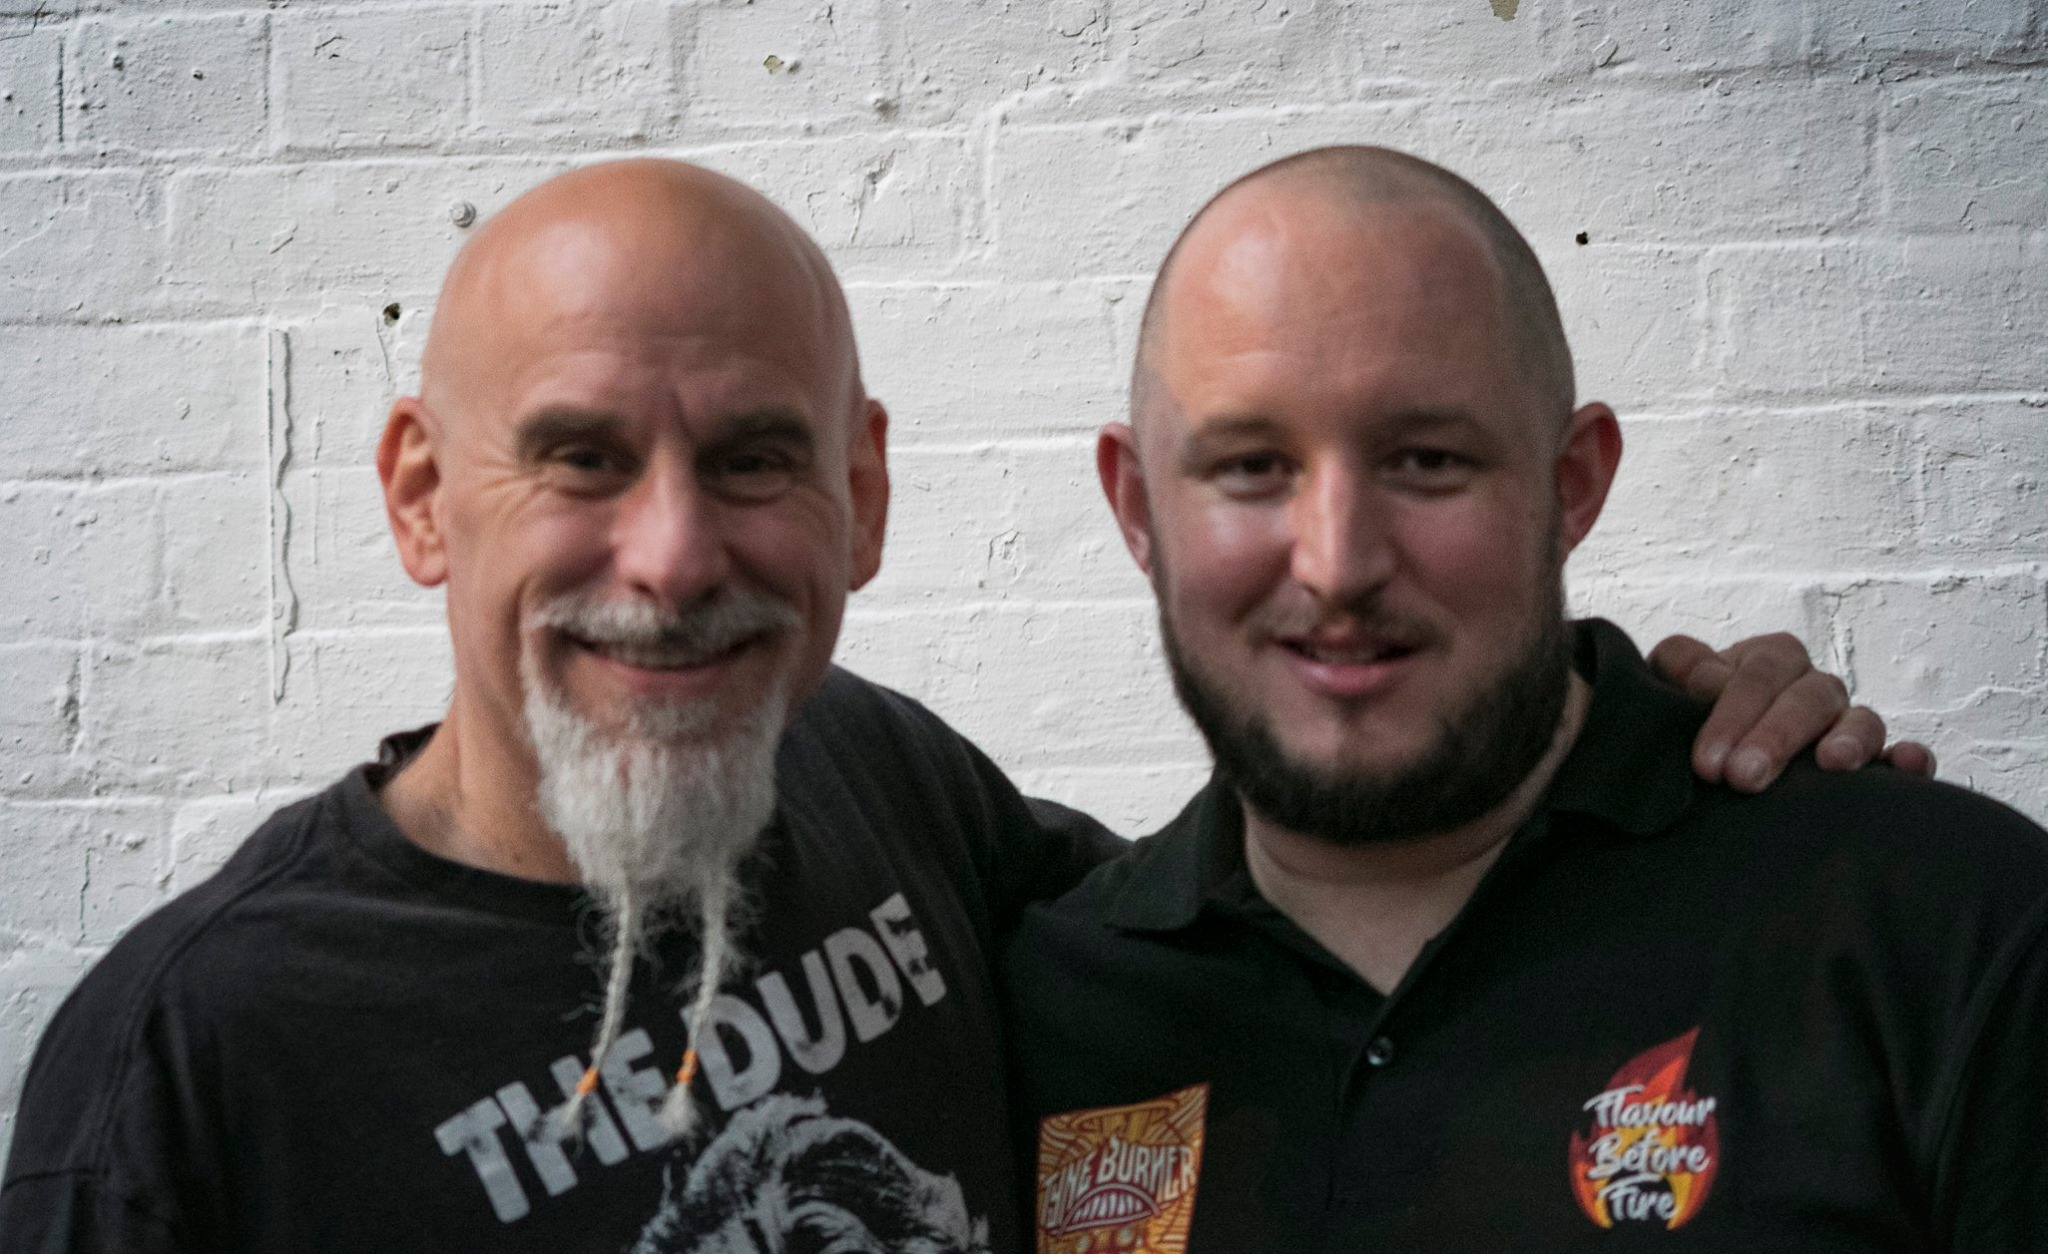 Youtube Chilli legend - Johnny Scoville & myself at Tyne burner 12/10/19